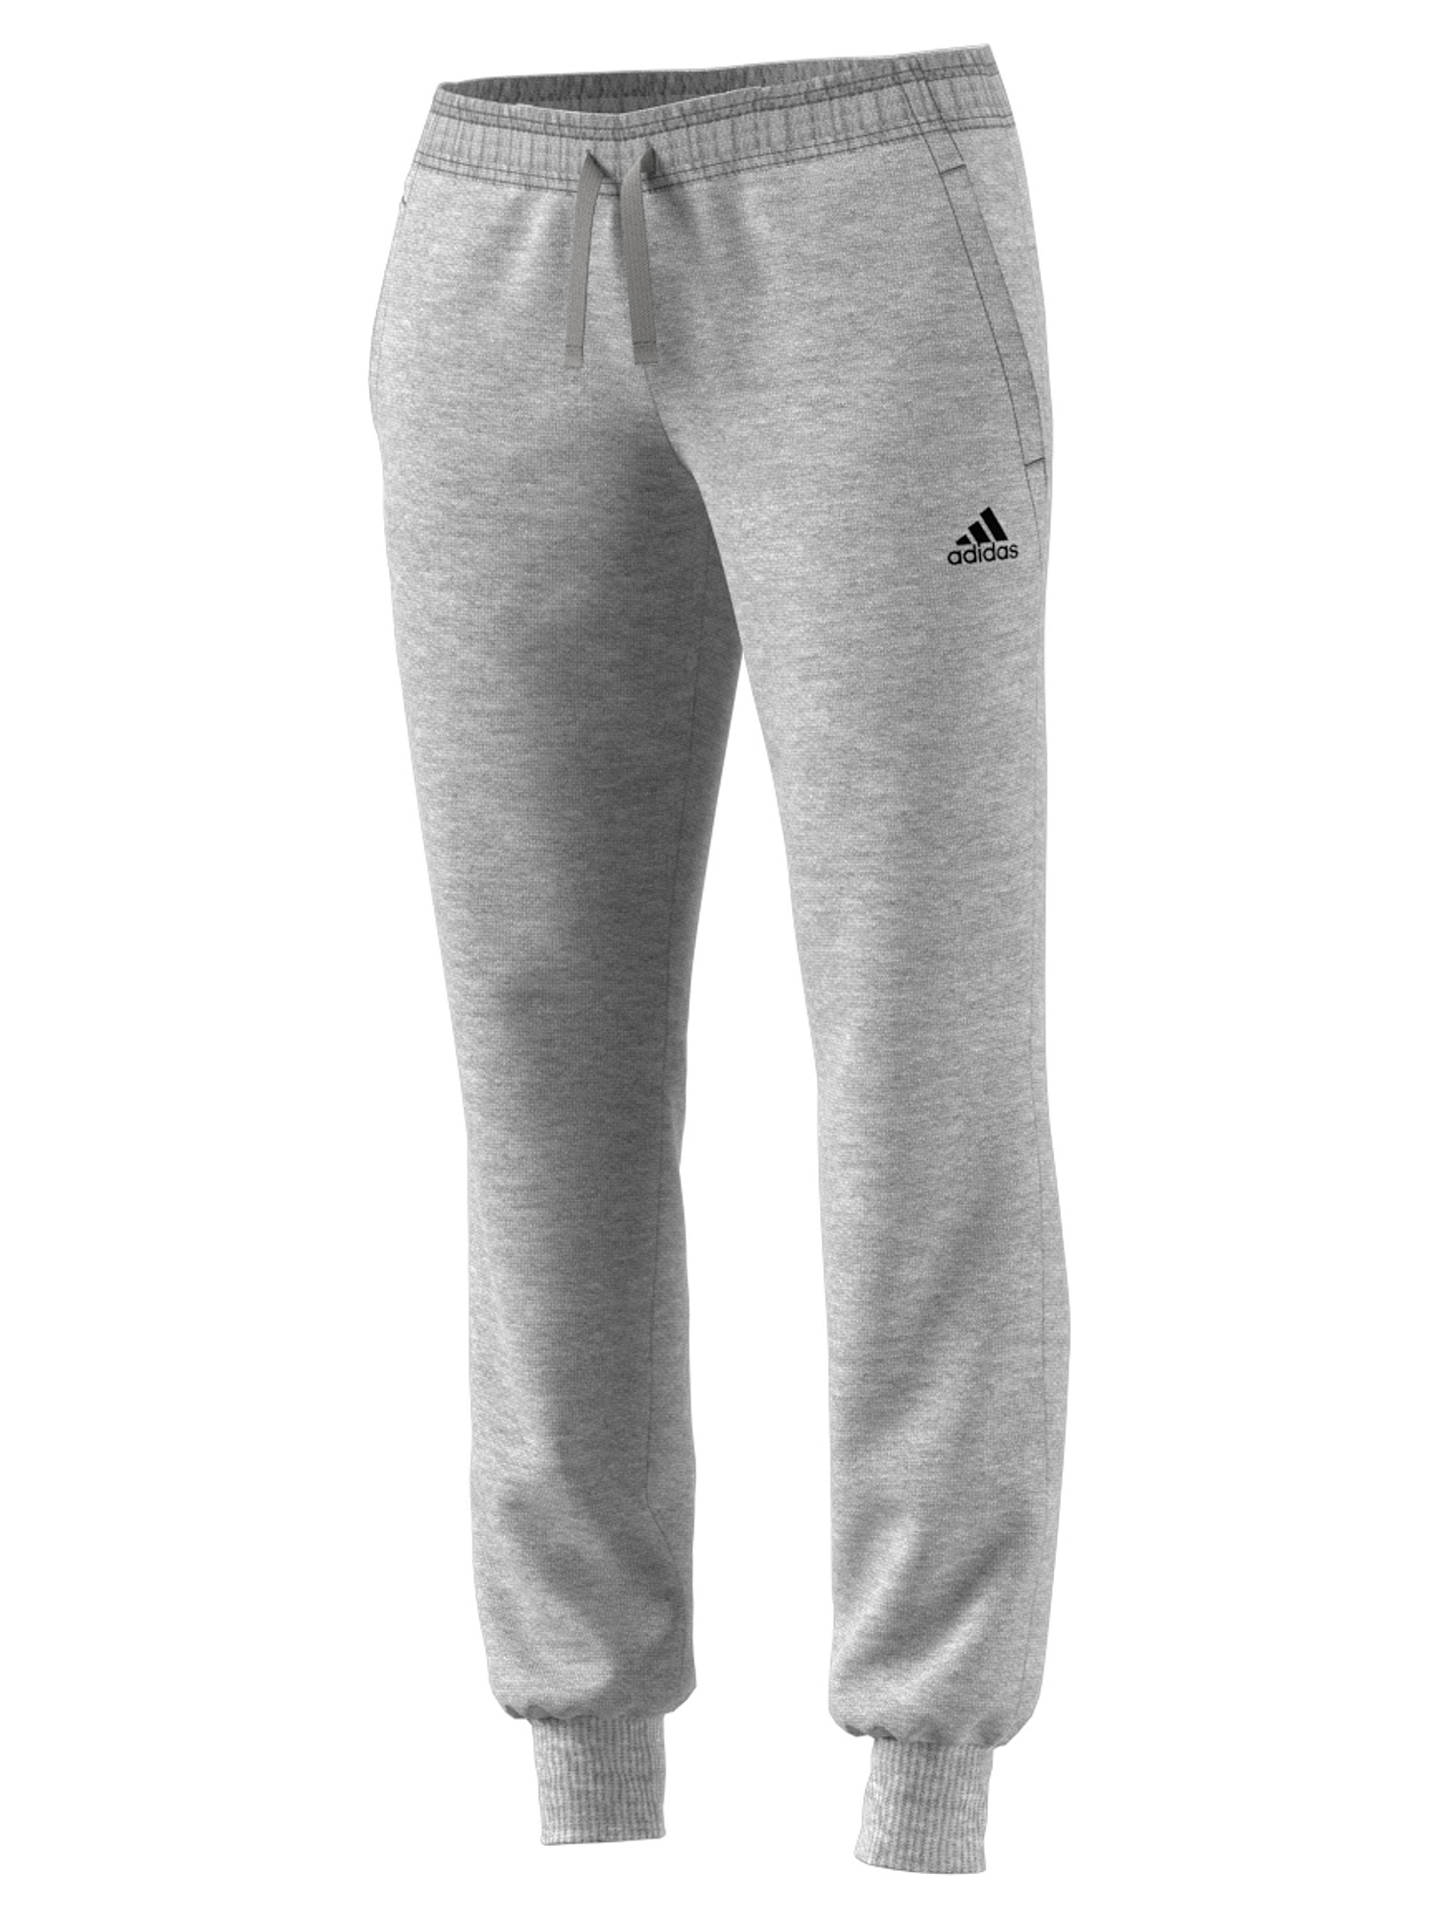 a90b9e420f ... Buy adidas Essential Solid Tracksuit Bottoms, Grey Heather, XS Online  at johnlewis.com ...